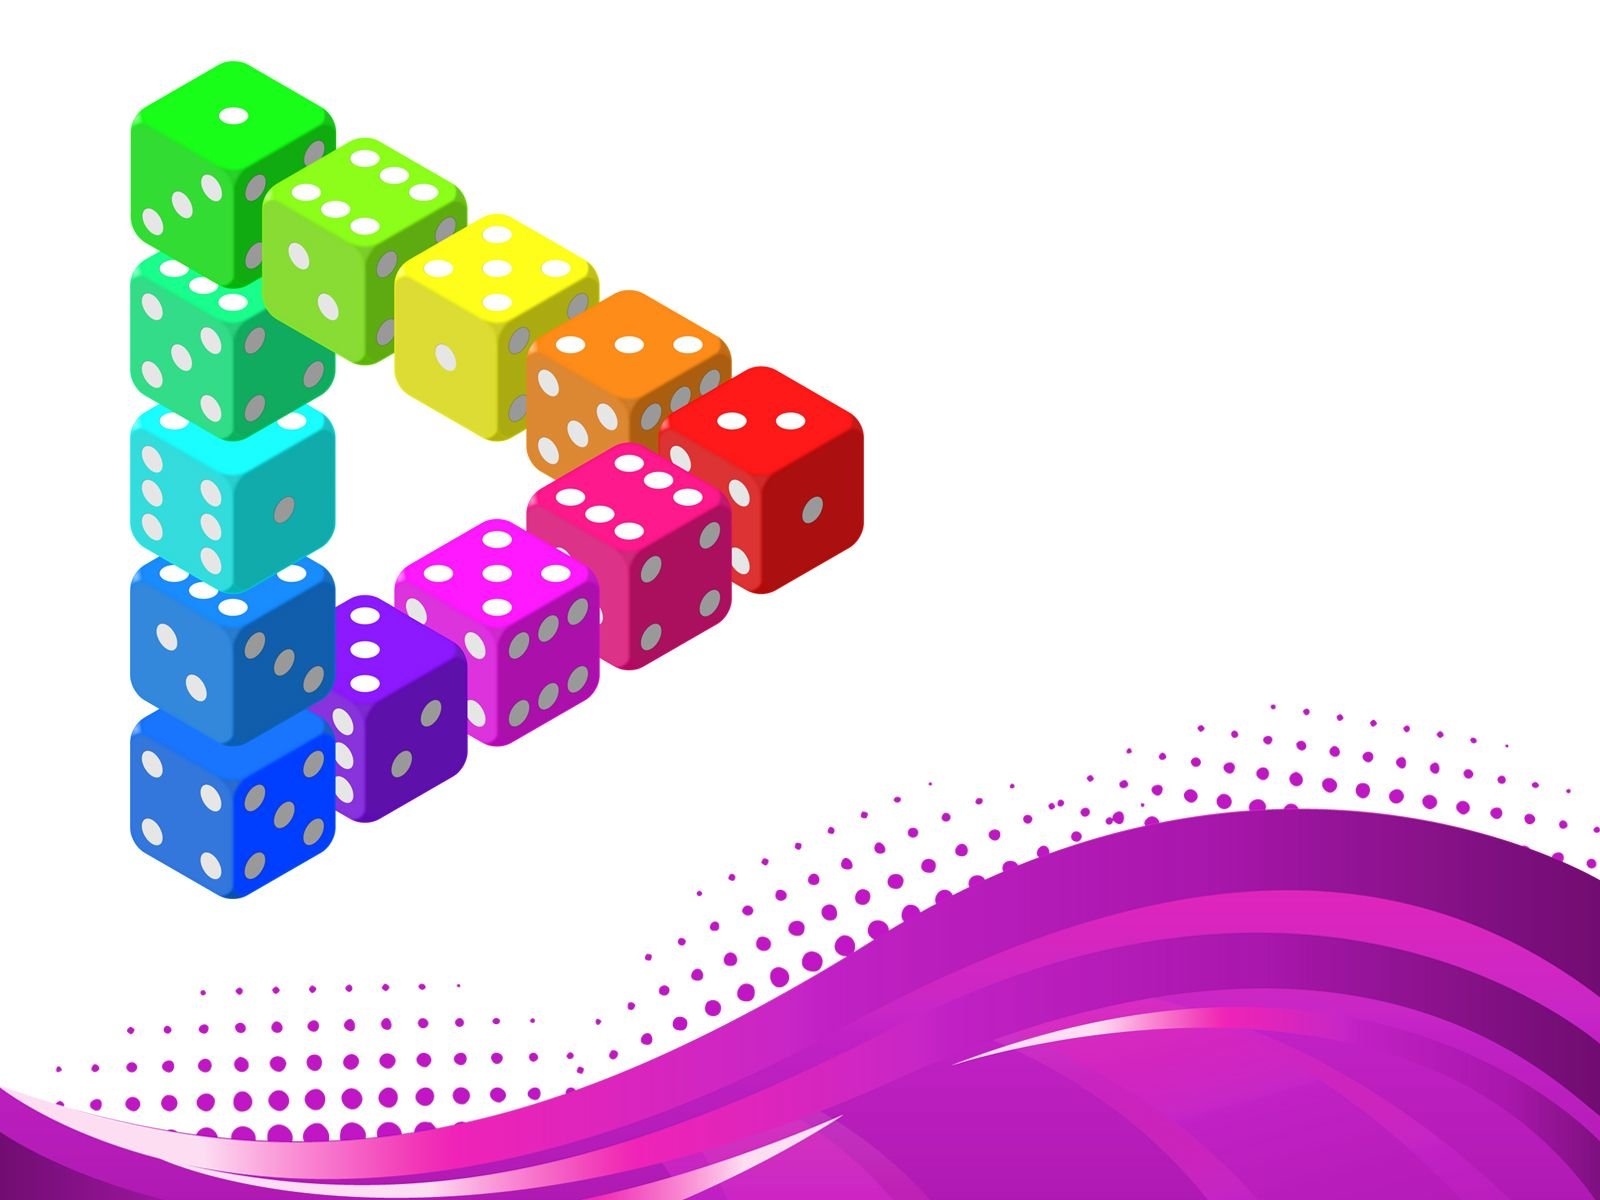 Download free 3d dice powerpoint templates containing dices with download free 3d dice powerpoint templates containing dices with multi color in the slide design and toneelgroepblik